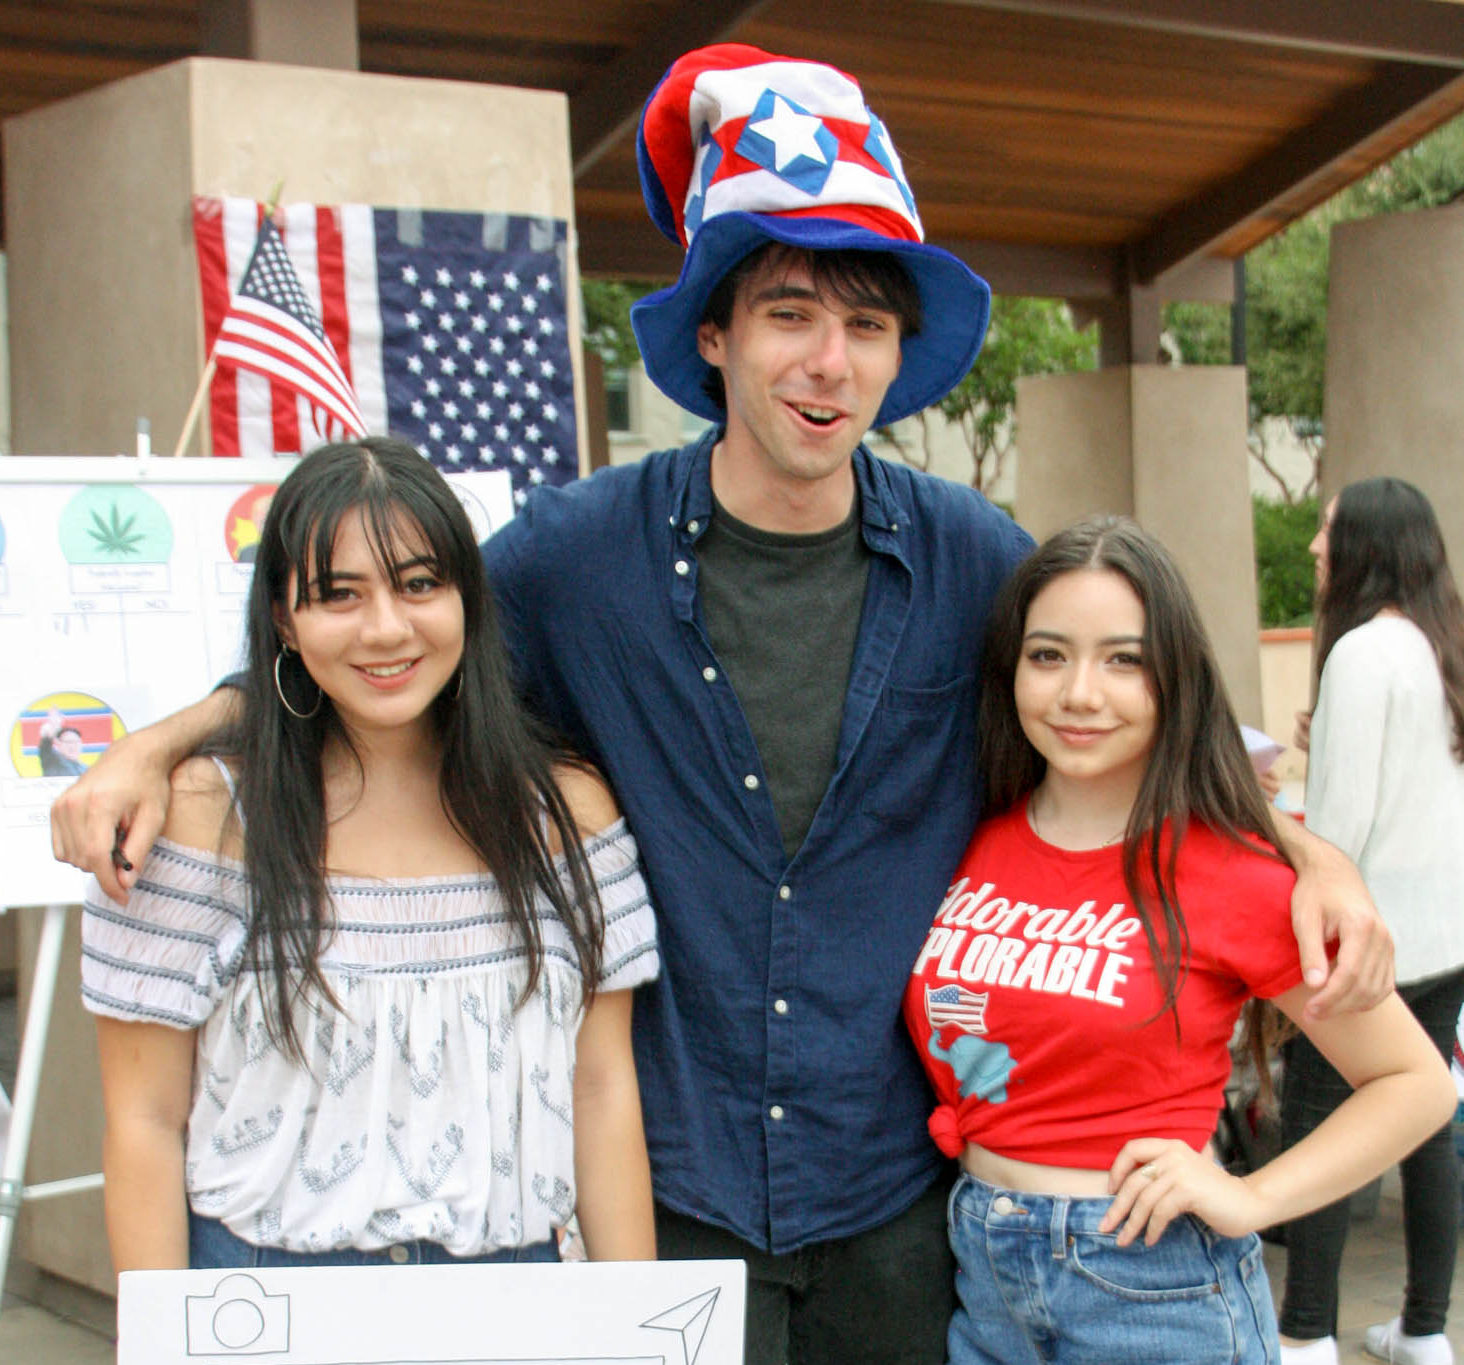 Political clubs promote advocacy and engagement on campus